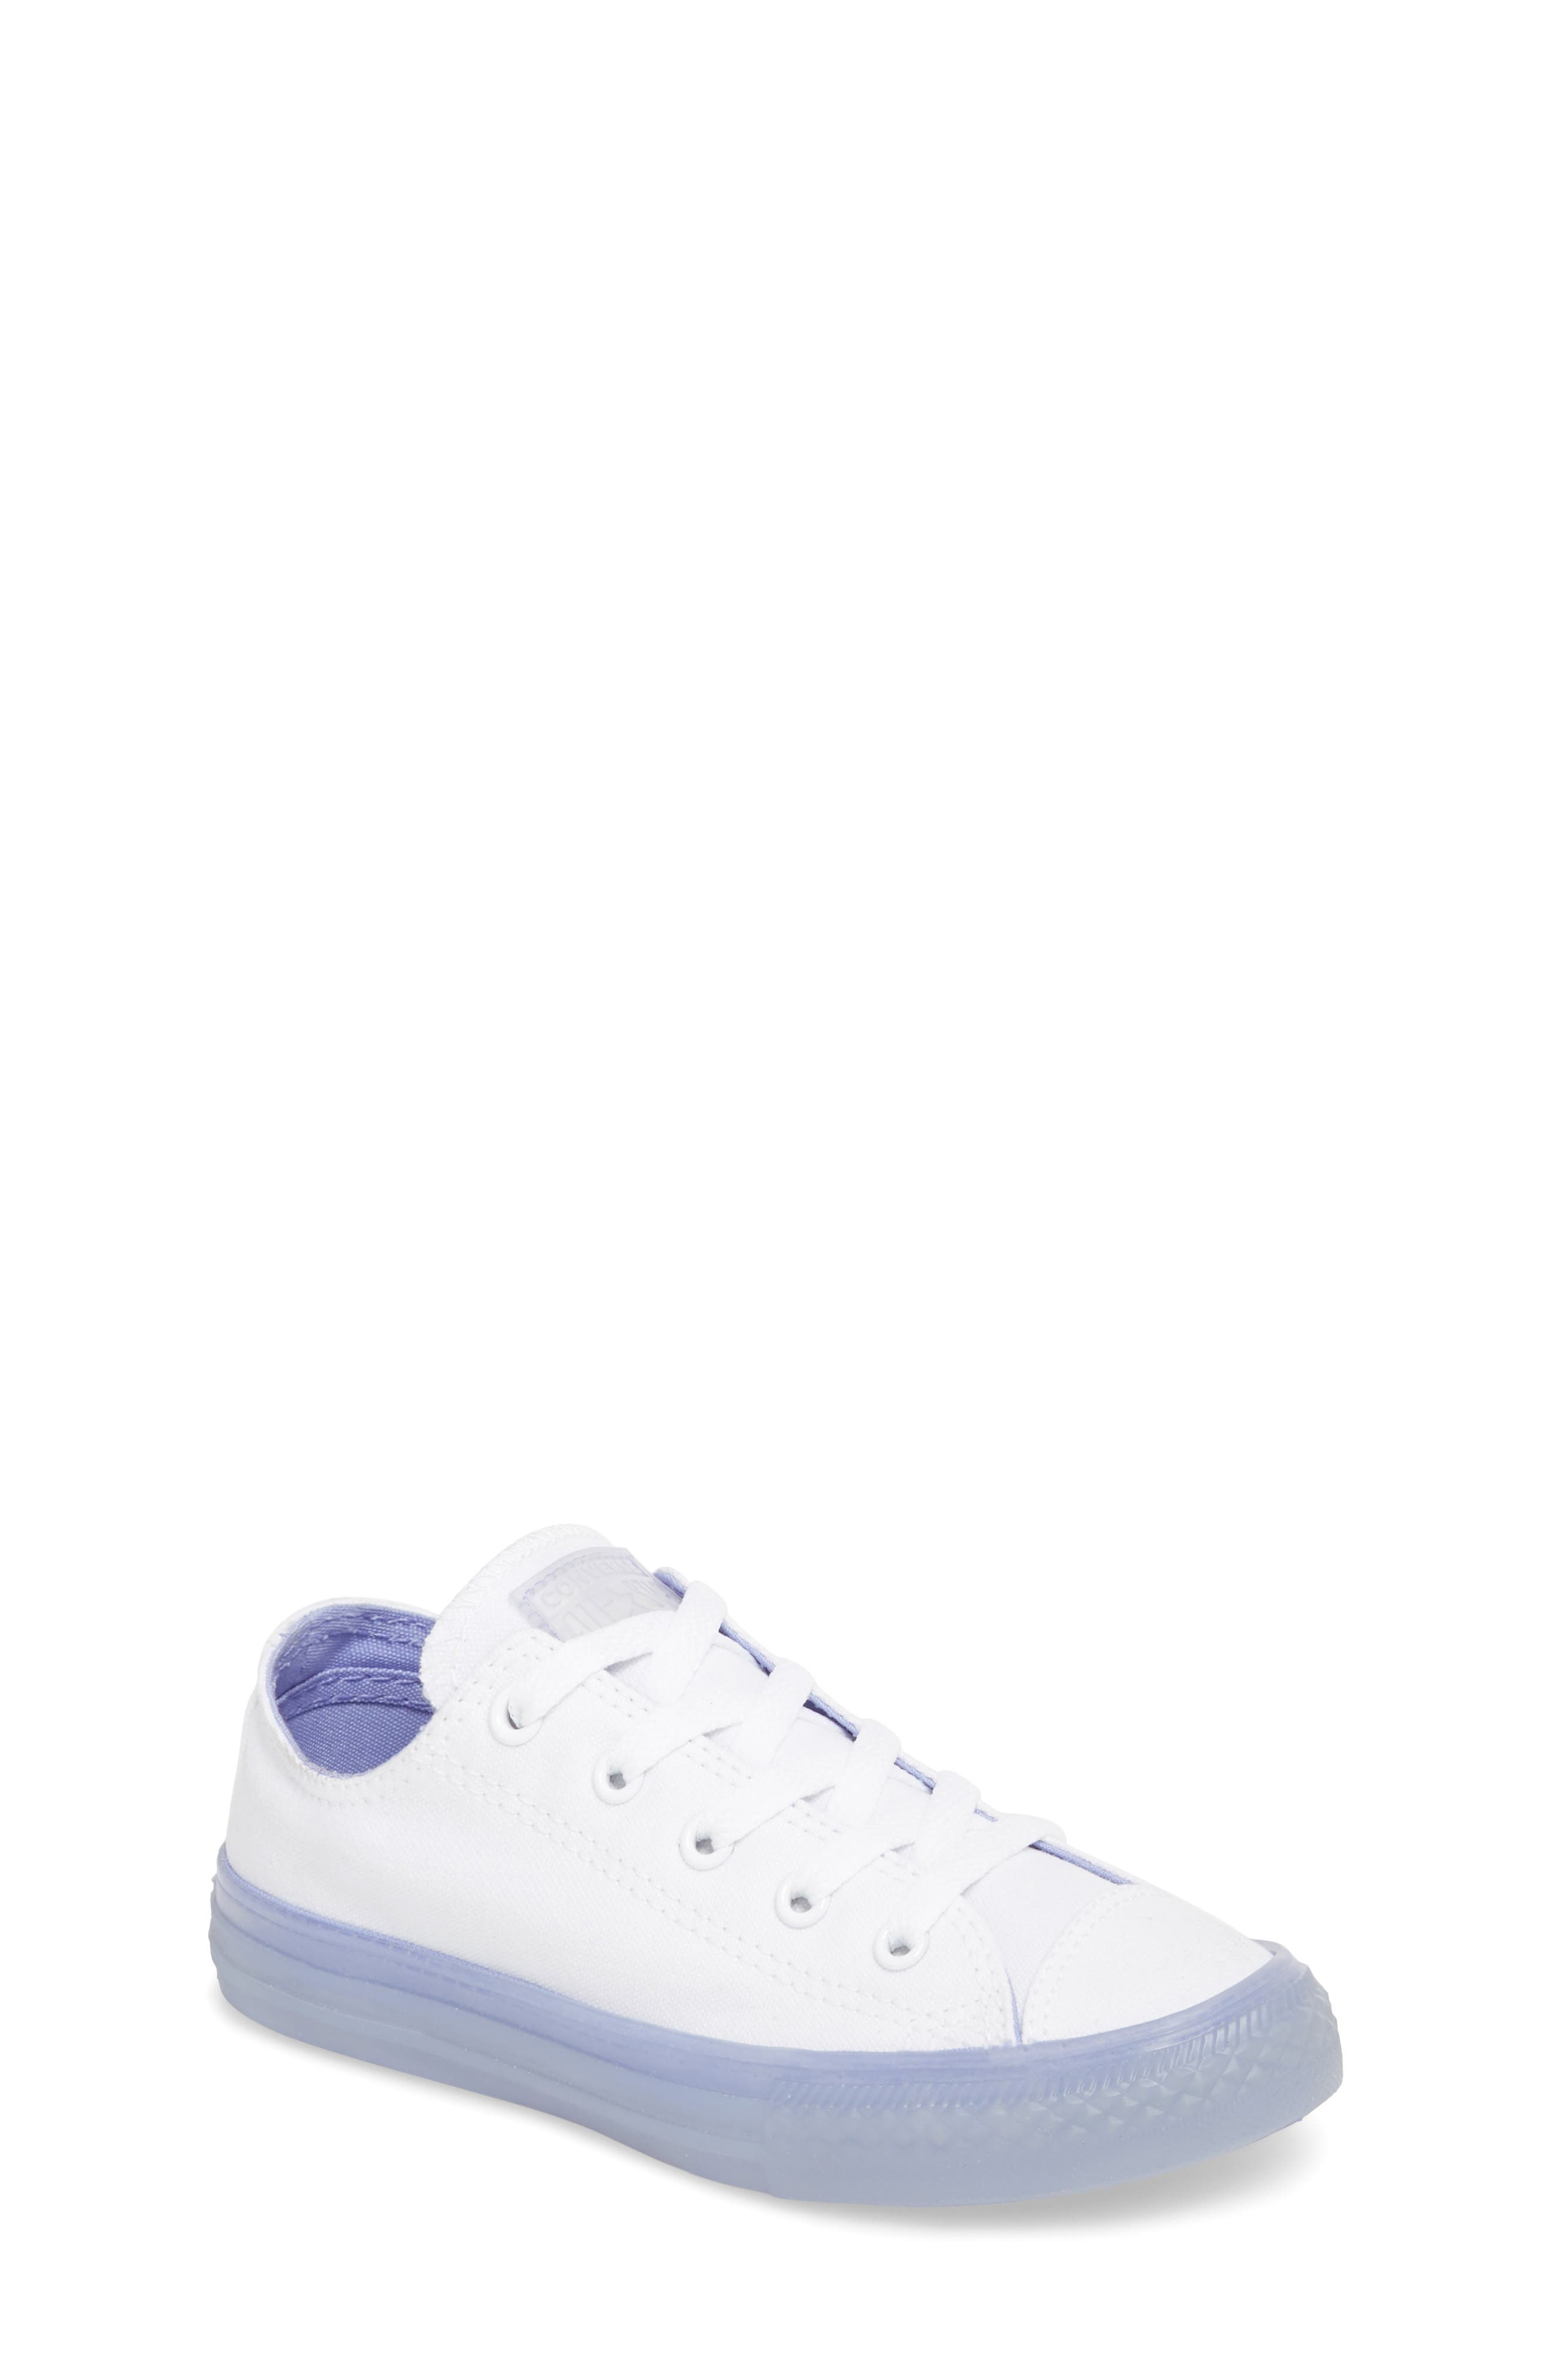 Chuck Taylor<sup>®</sup> All Star<sup>®</sup> Jelly Low Top Sneaker,                         Main,                         color, 503